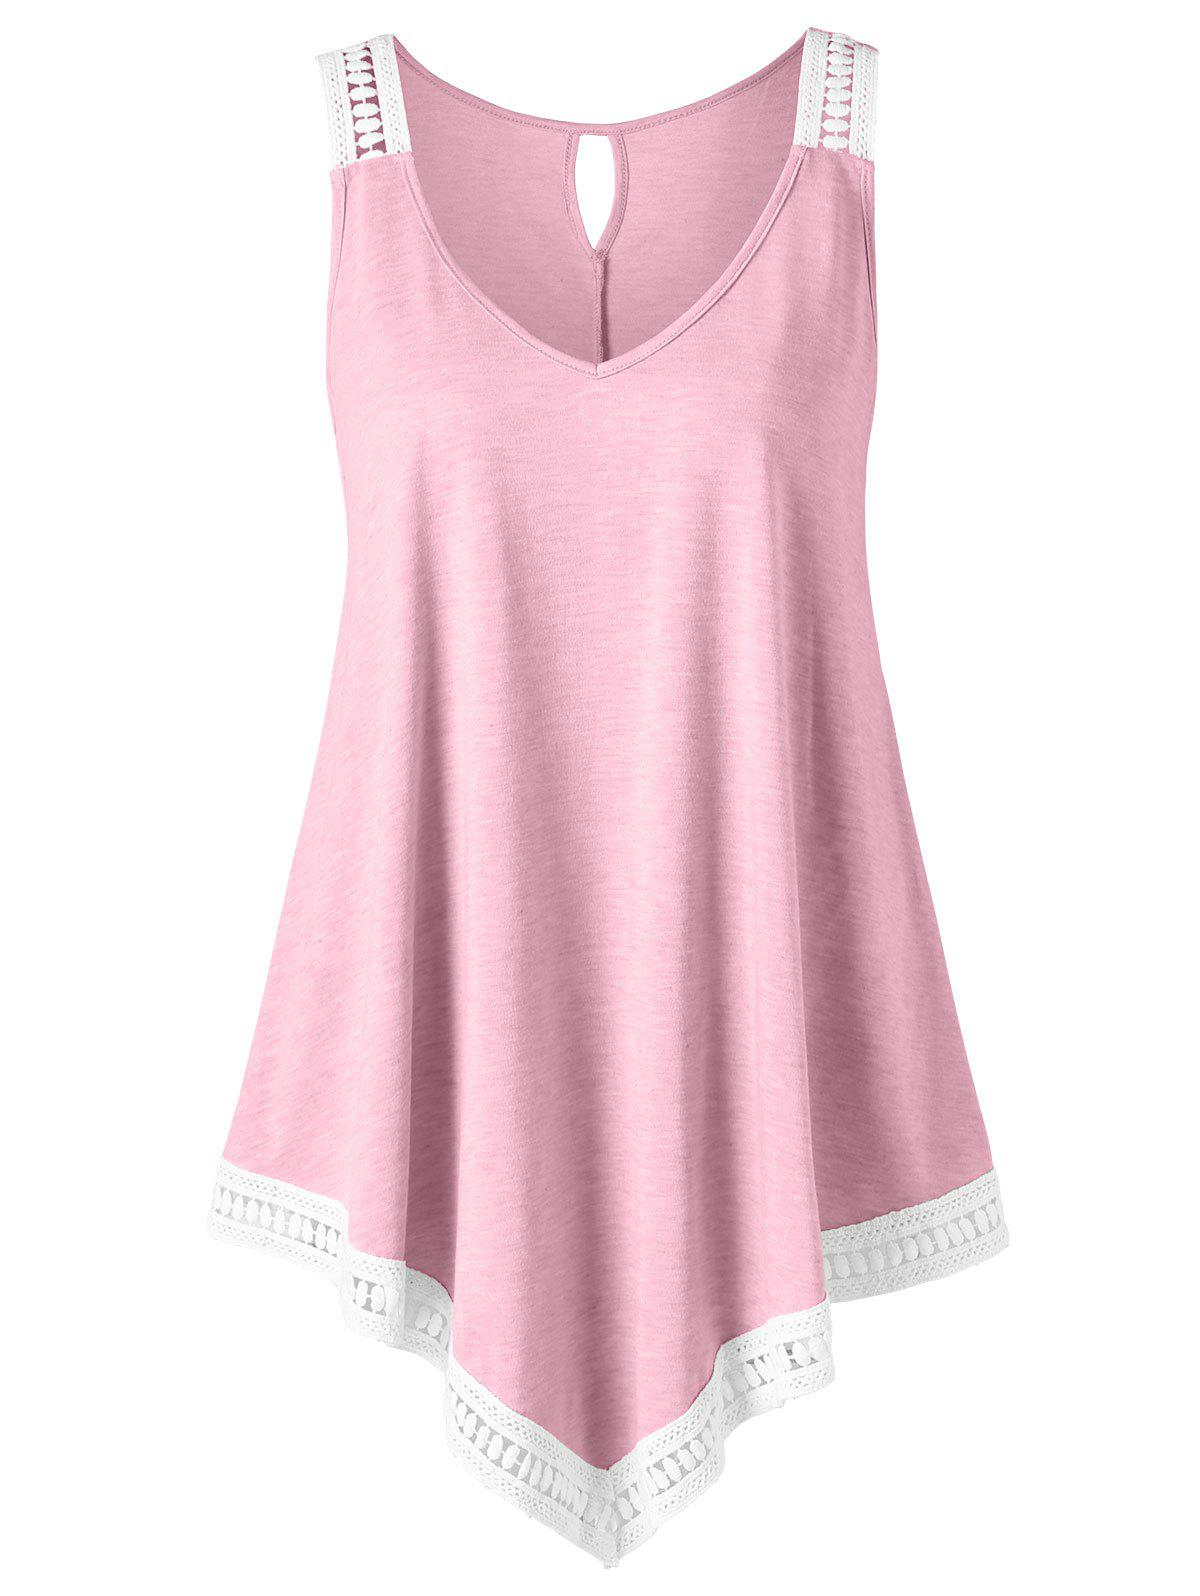 63b13248e1242 52% OFF   2018 Plus Size V Neck Trapeze Tank Top In Light Pink 3xl ...